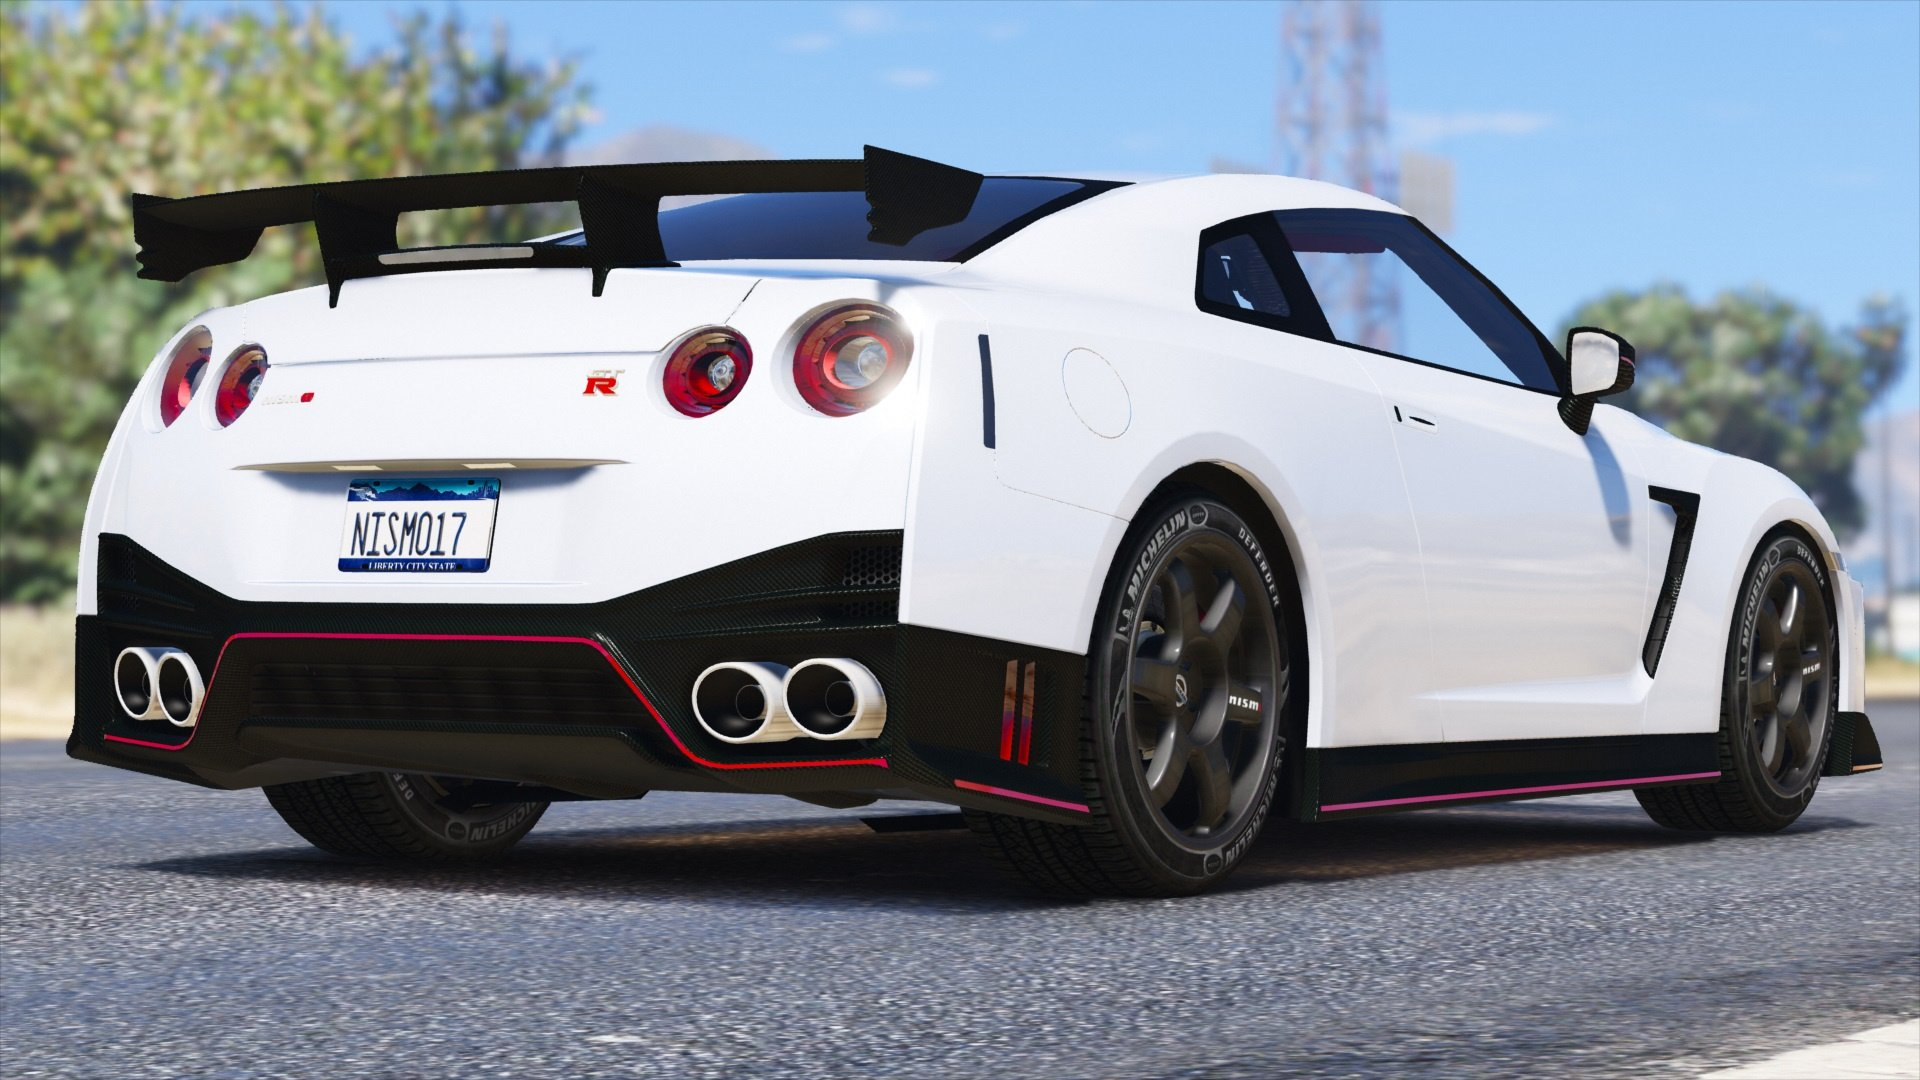 2017 Nissan GTR Nismo [Add-On / Replace] - GTA5-Mods.com